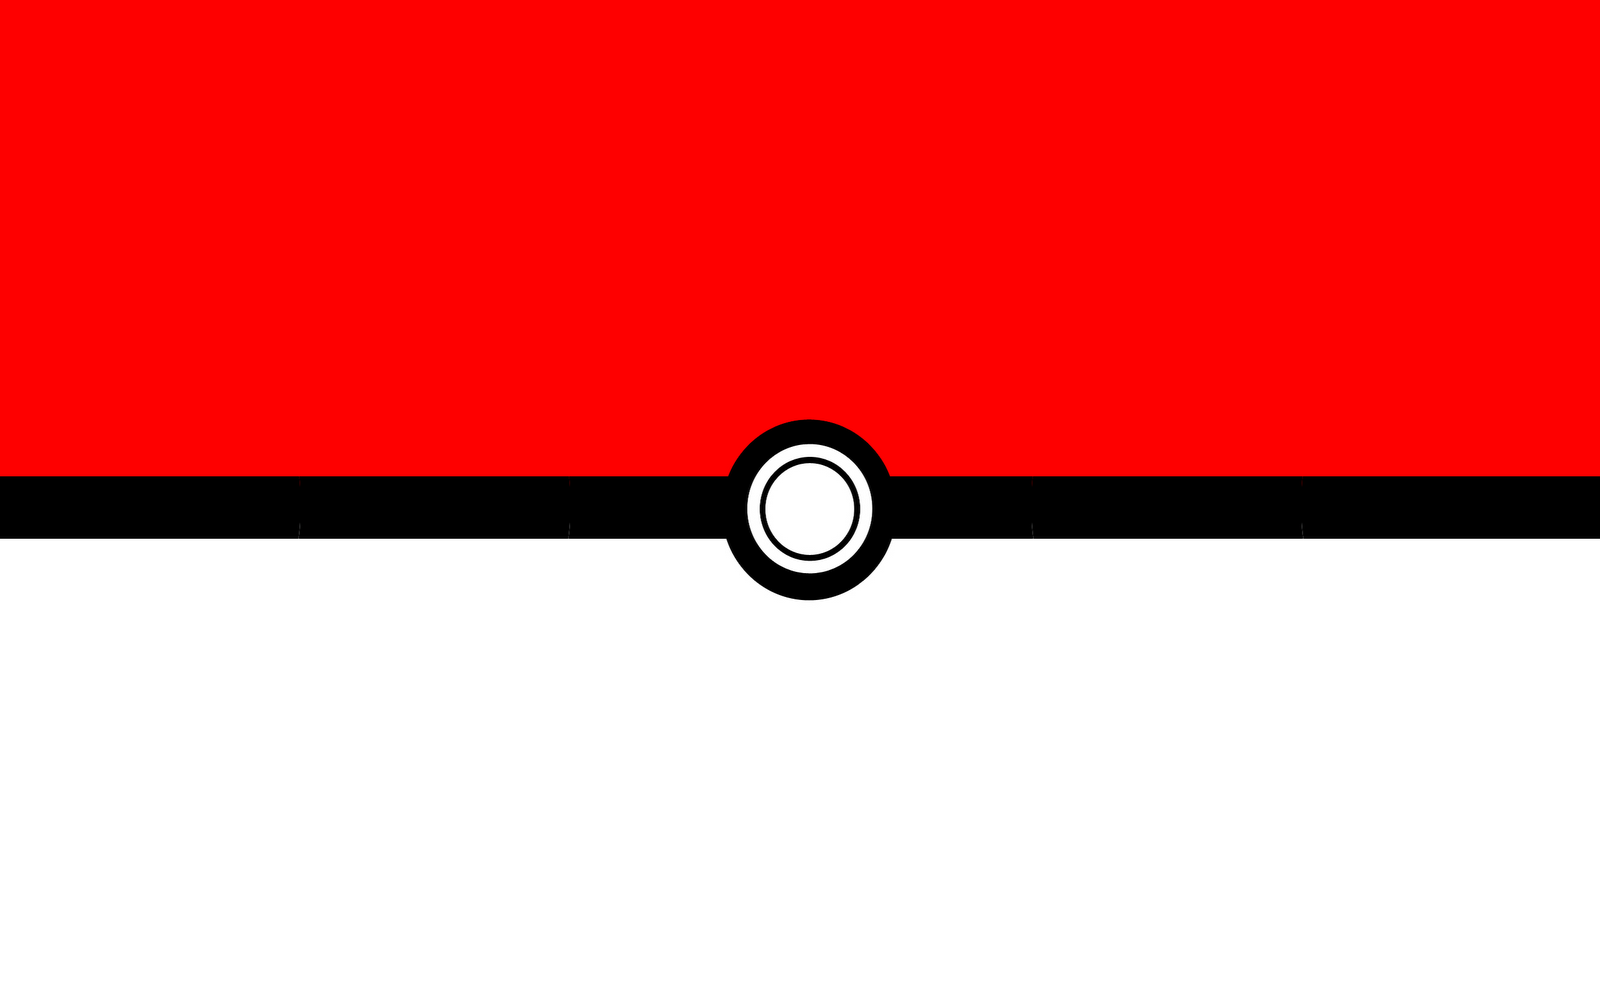 Pokemon Wallpaper Free HD